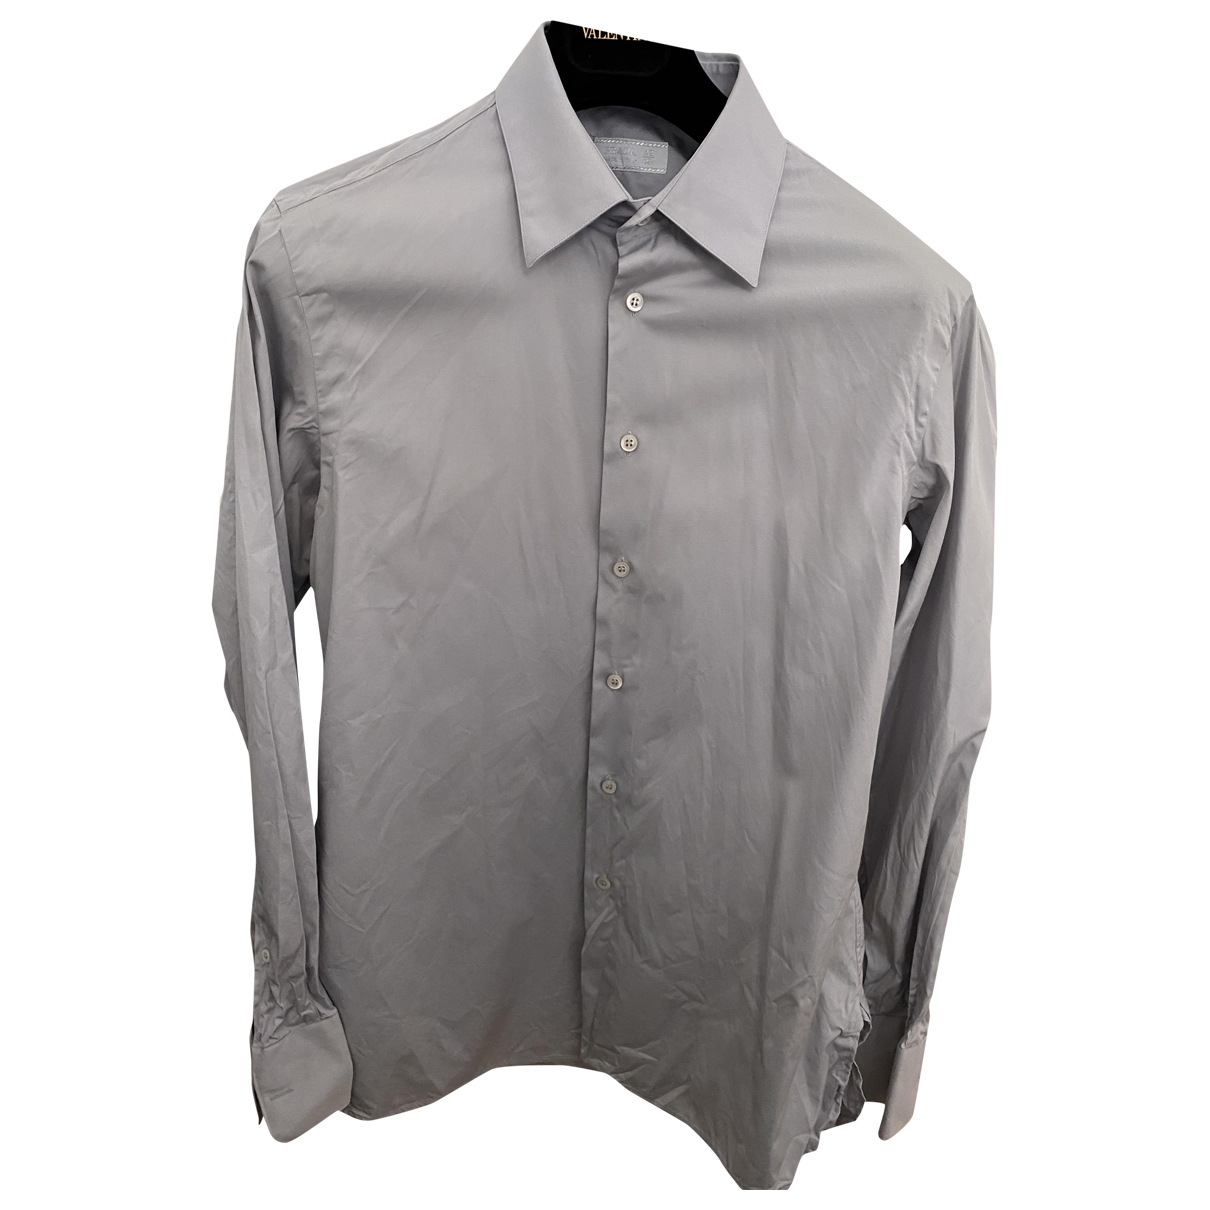 Prada \N Grey Cotton Shirts for Men 42 EU (tour de cou / collar)